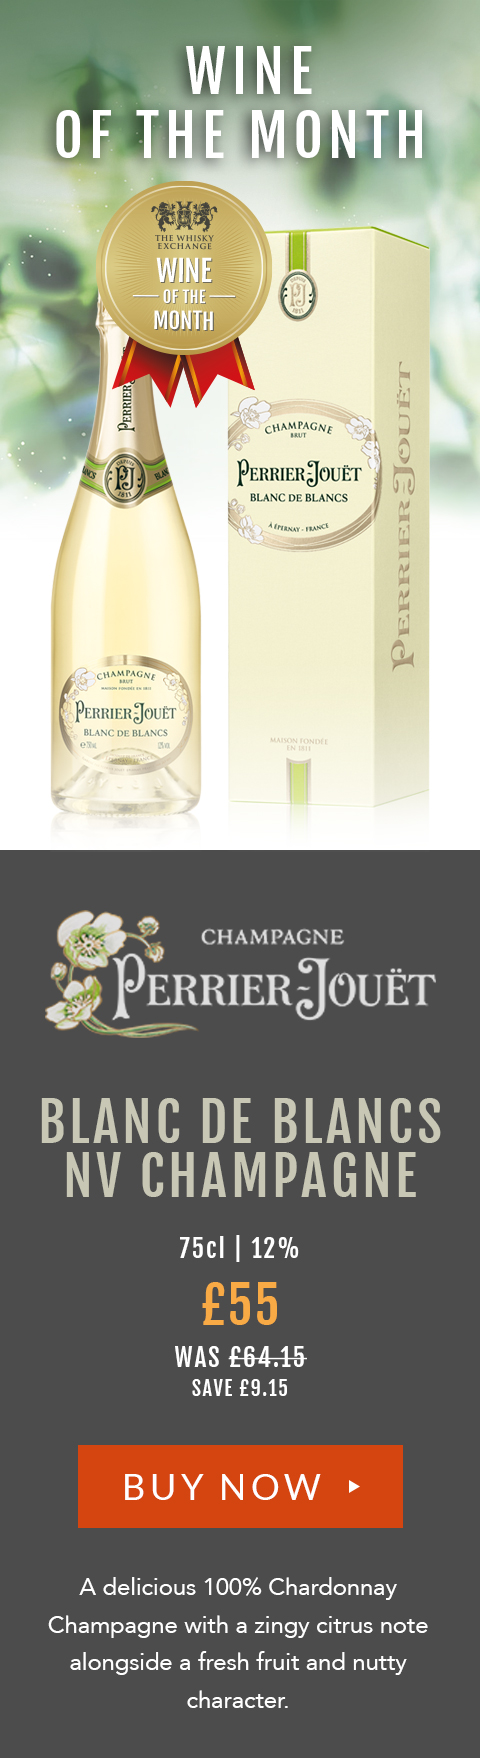 Blanc de Blancs NV Champagne 75cl | 12% £55 (was £64.15) – save £9.15 A delicious 100% Chardonnay Champagne with a zingy citrus note alongside a fresh fruit and nutty character.